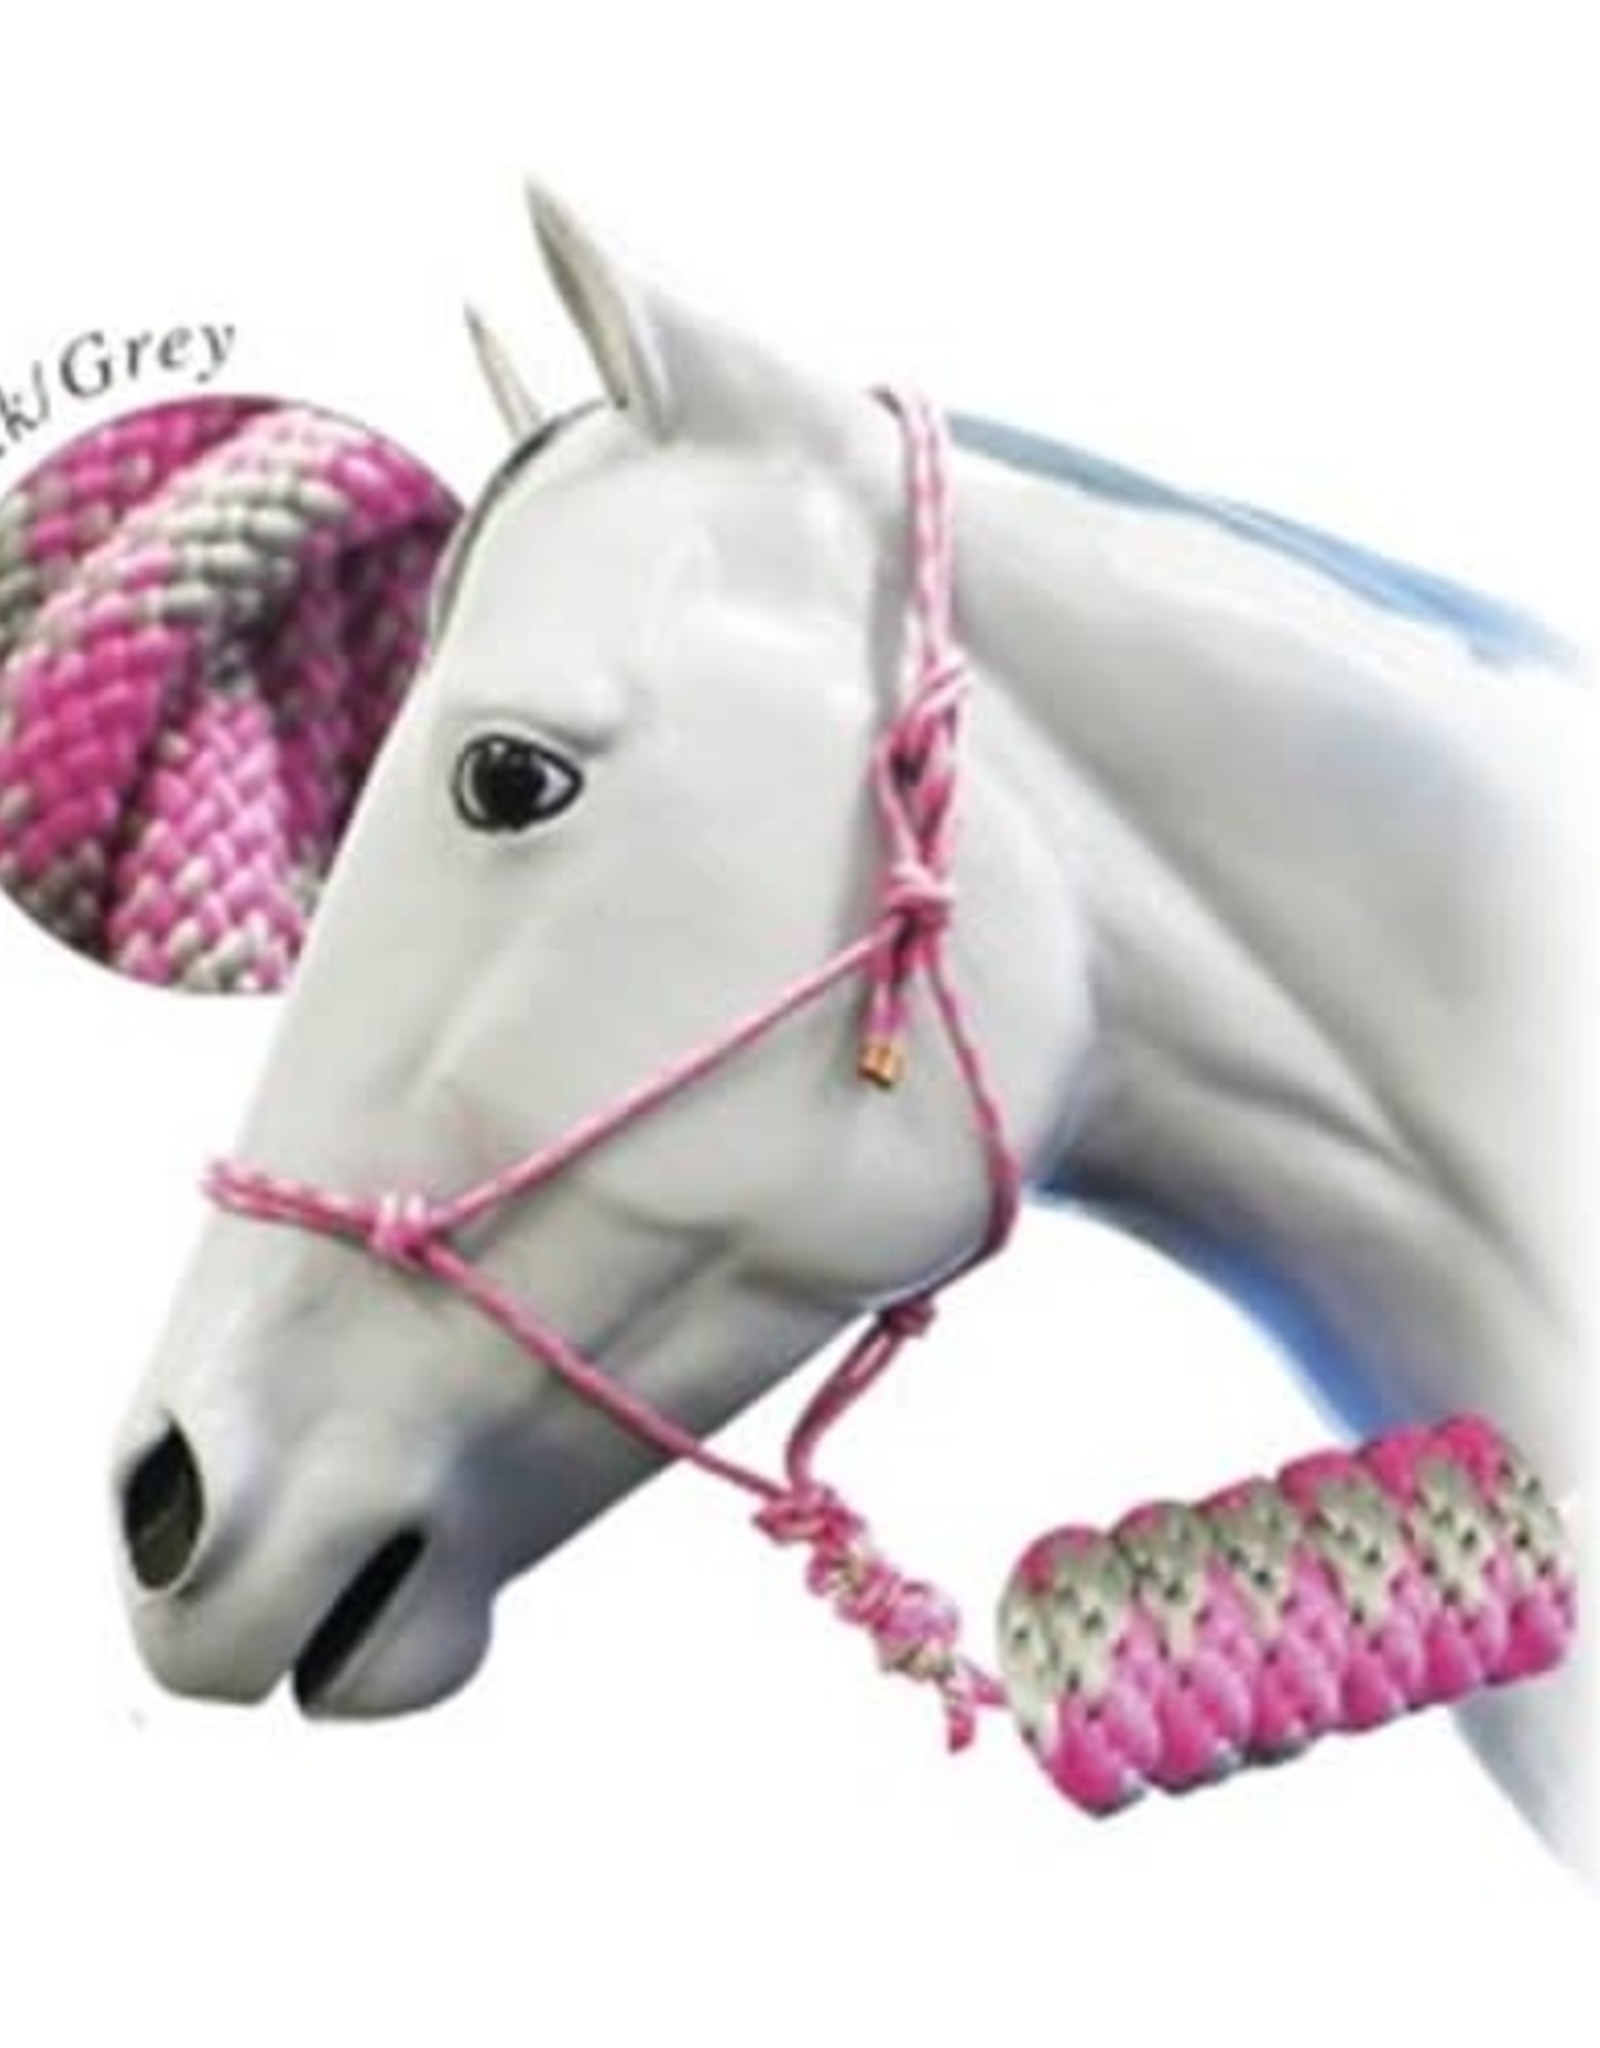 Fort Worth Rope Halter with 10' Lead - Pink/Grey